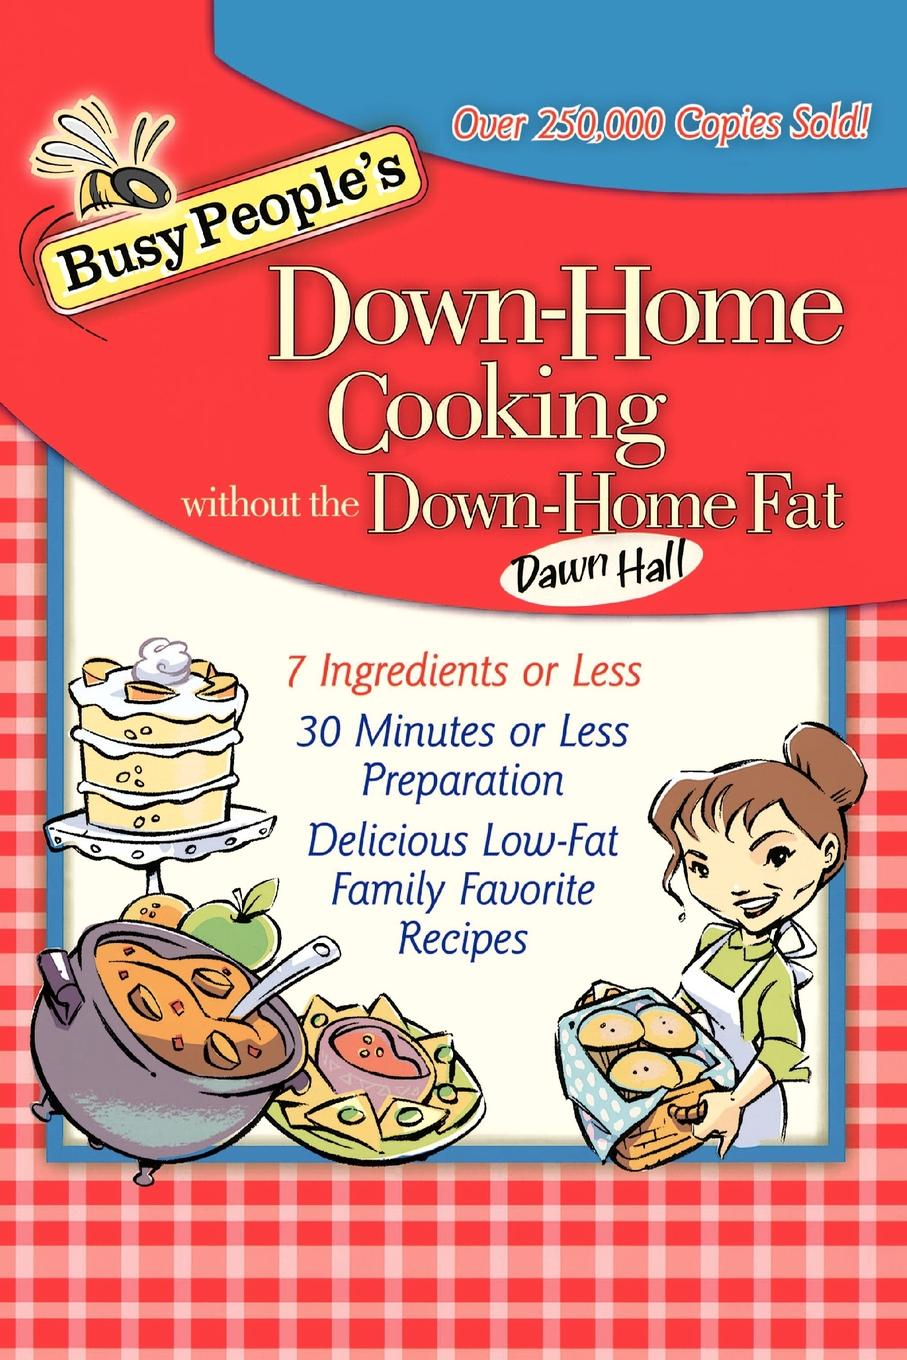 Dawn Hall Busy Peoples Down-Home Cooking Without the Fat